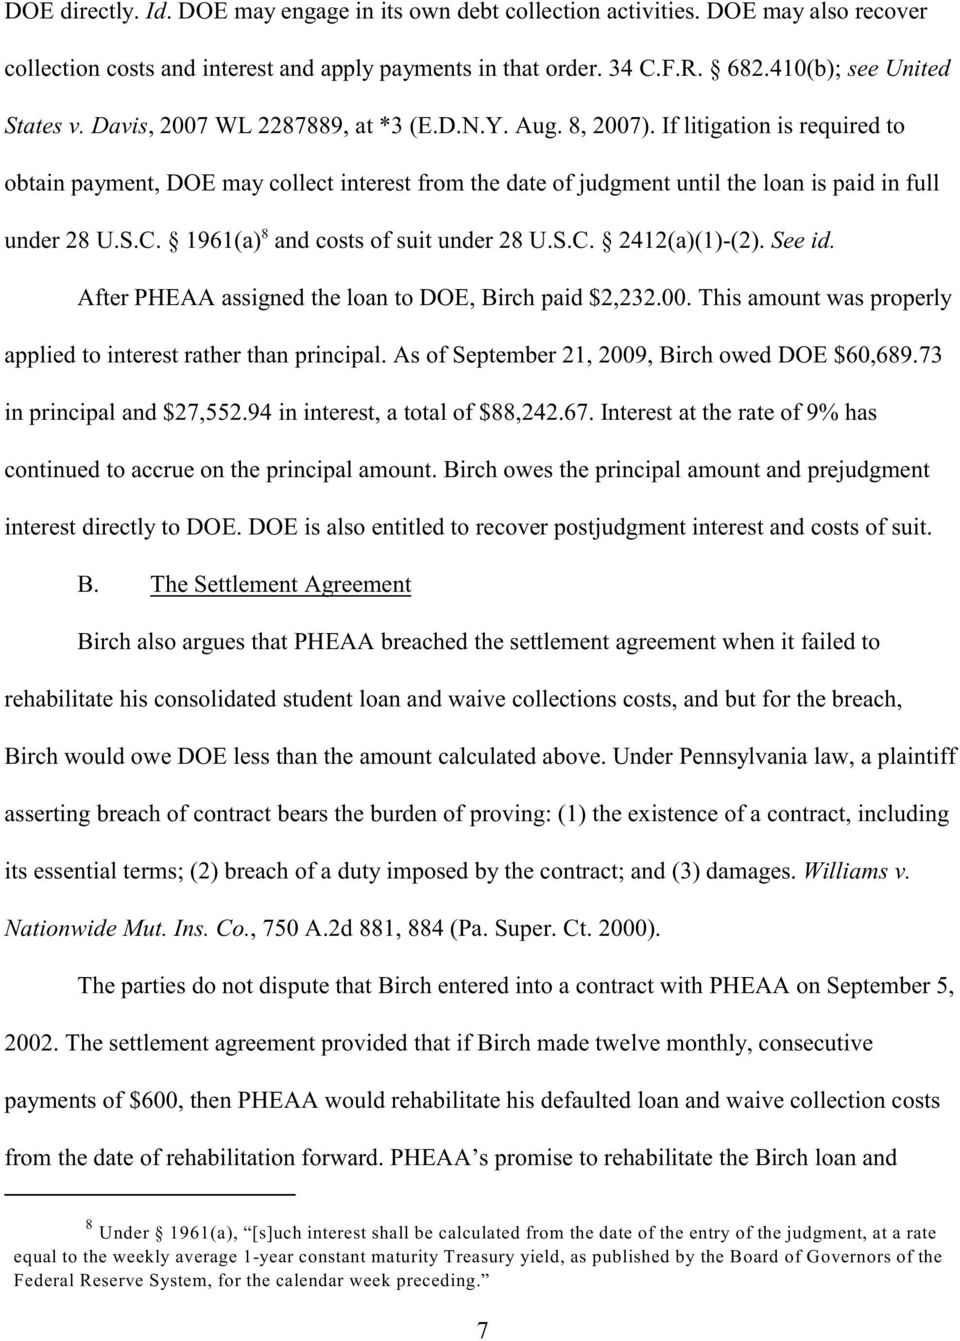 1961(a) and costs of suit under 28 U.S.C. 2412(a)(1)-(2). See id. After PHEAA assigned the loan to DOE, Birch paid $2,232.00. This amount was properly applied to interest rather than principal.